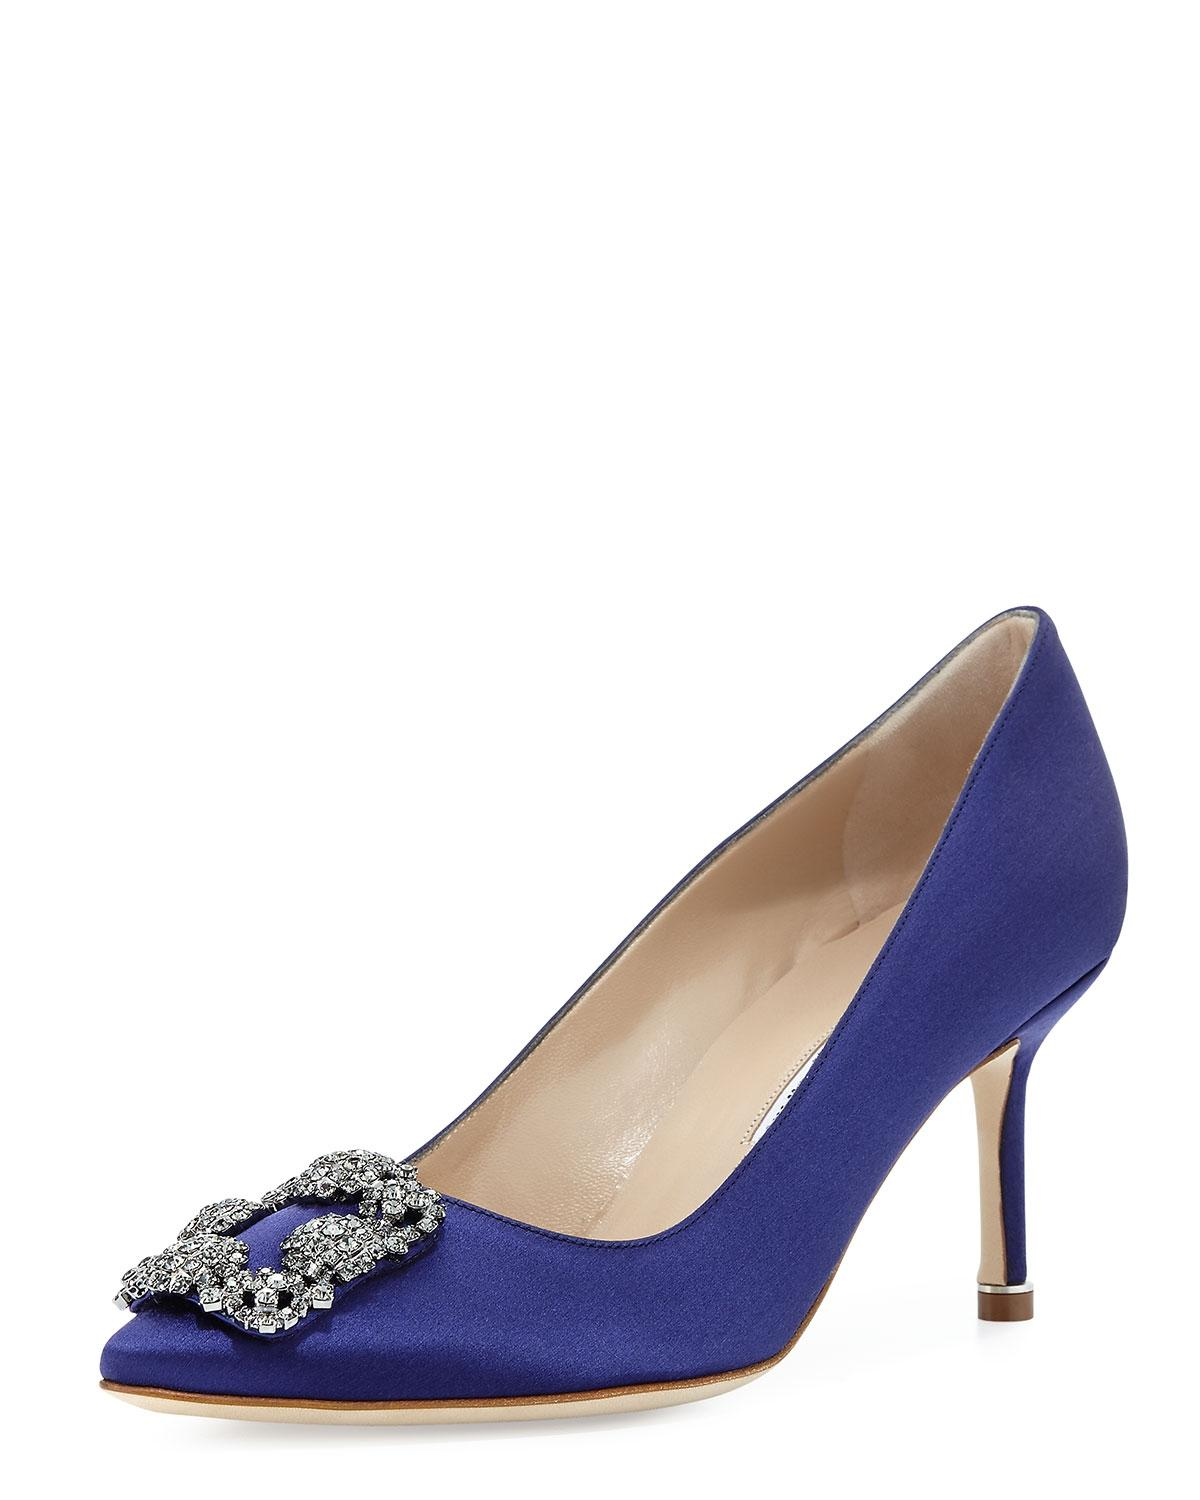 454f90074774a ... uk manolo blahnik hangisi blue satin medium purple pumps 3265e 8f9d8